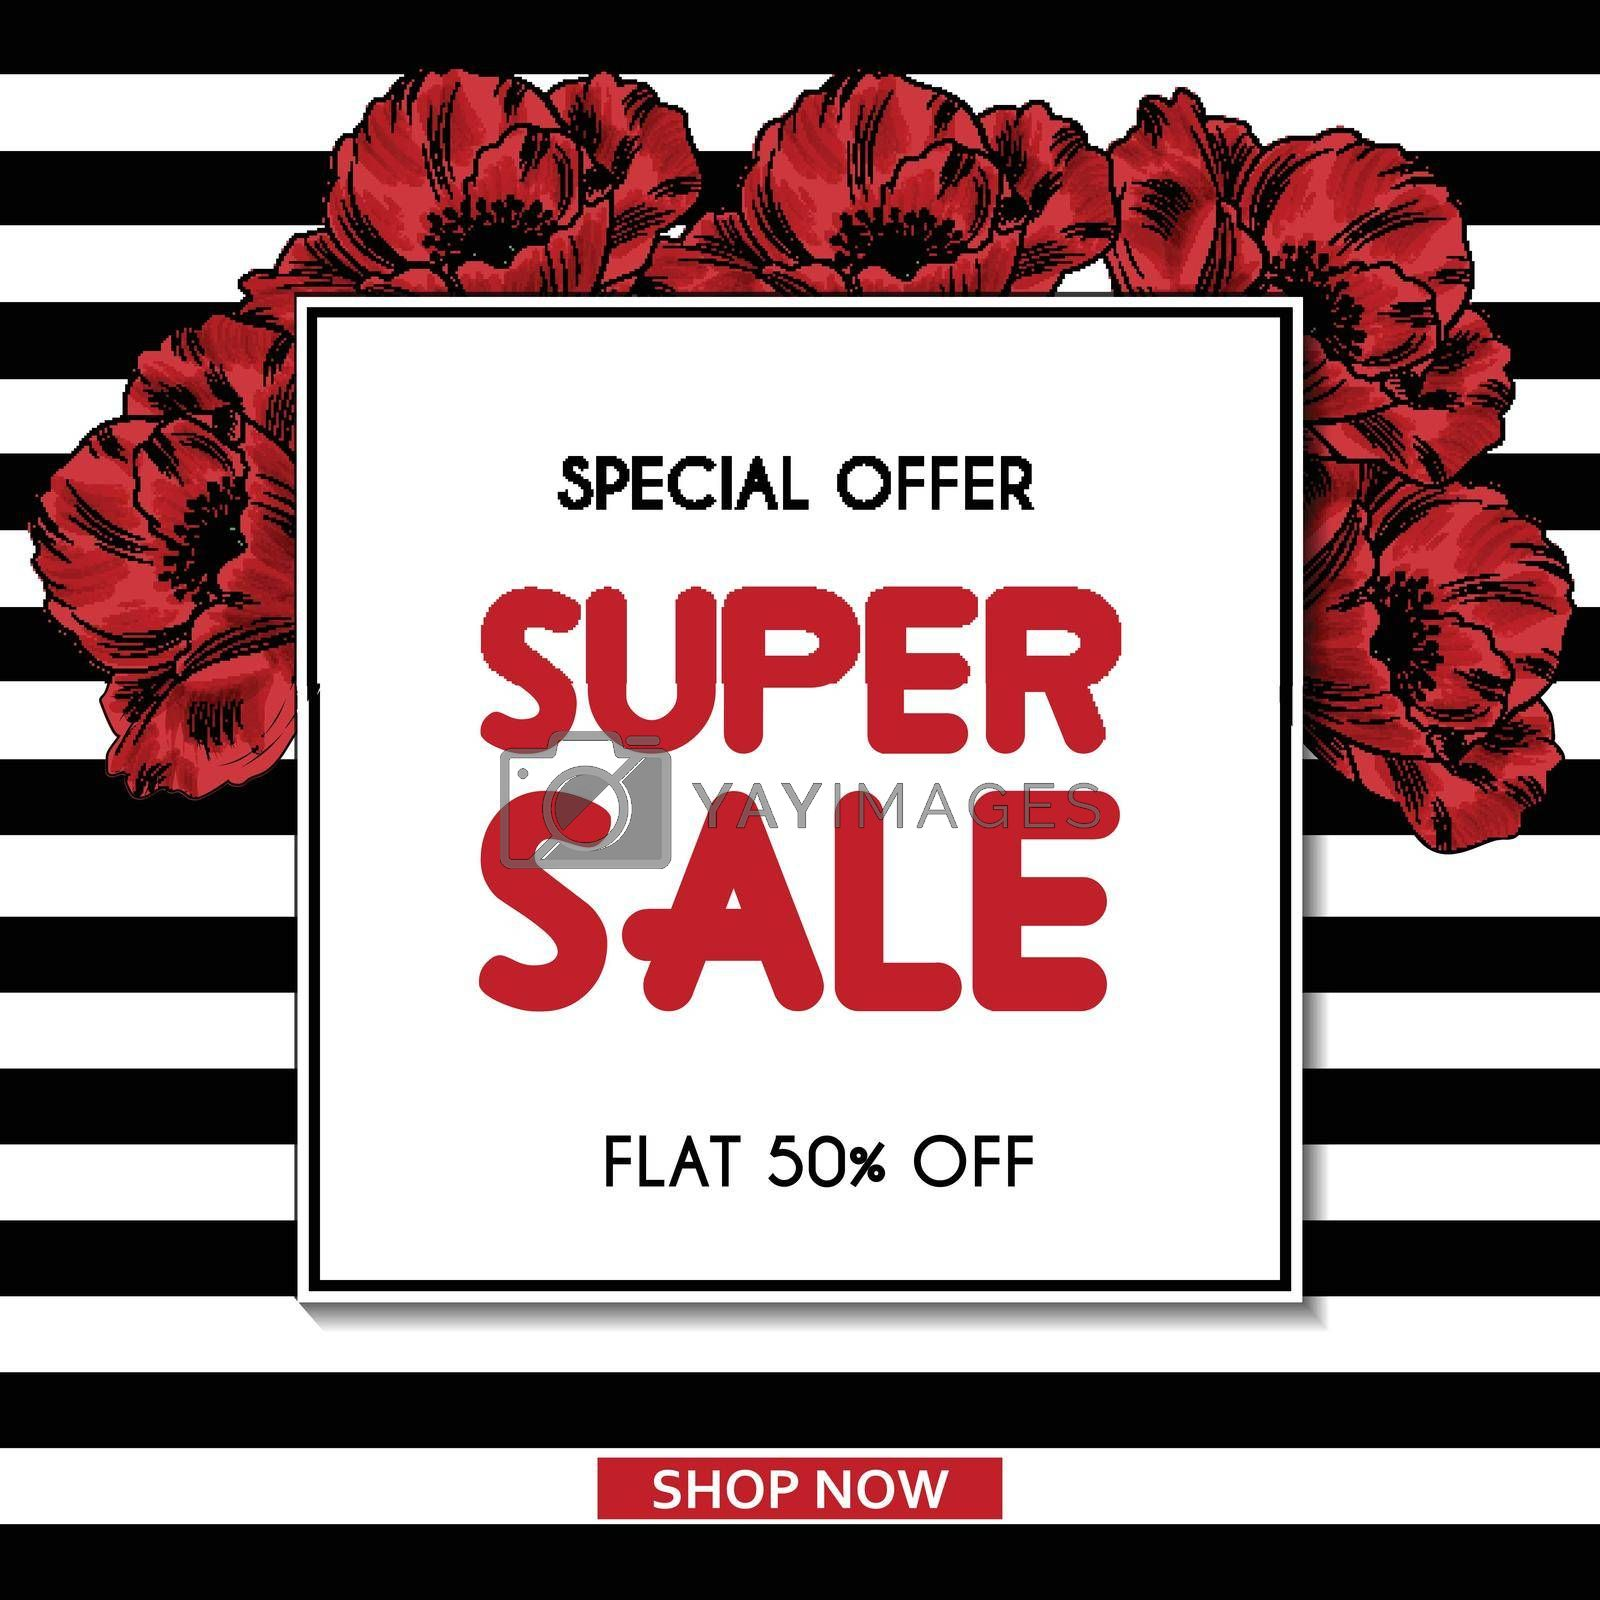 Super Sale banner template with poppies. Sales ad template for the web site, social media, shop, flyer and more.